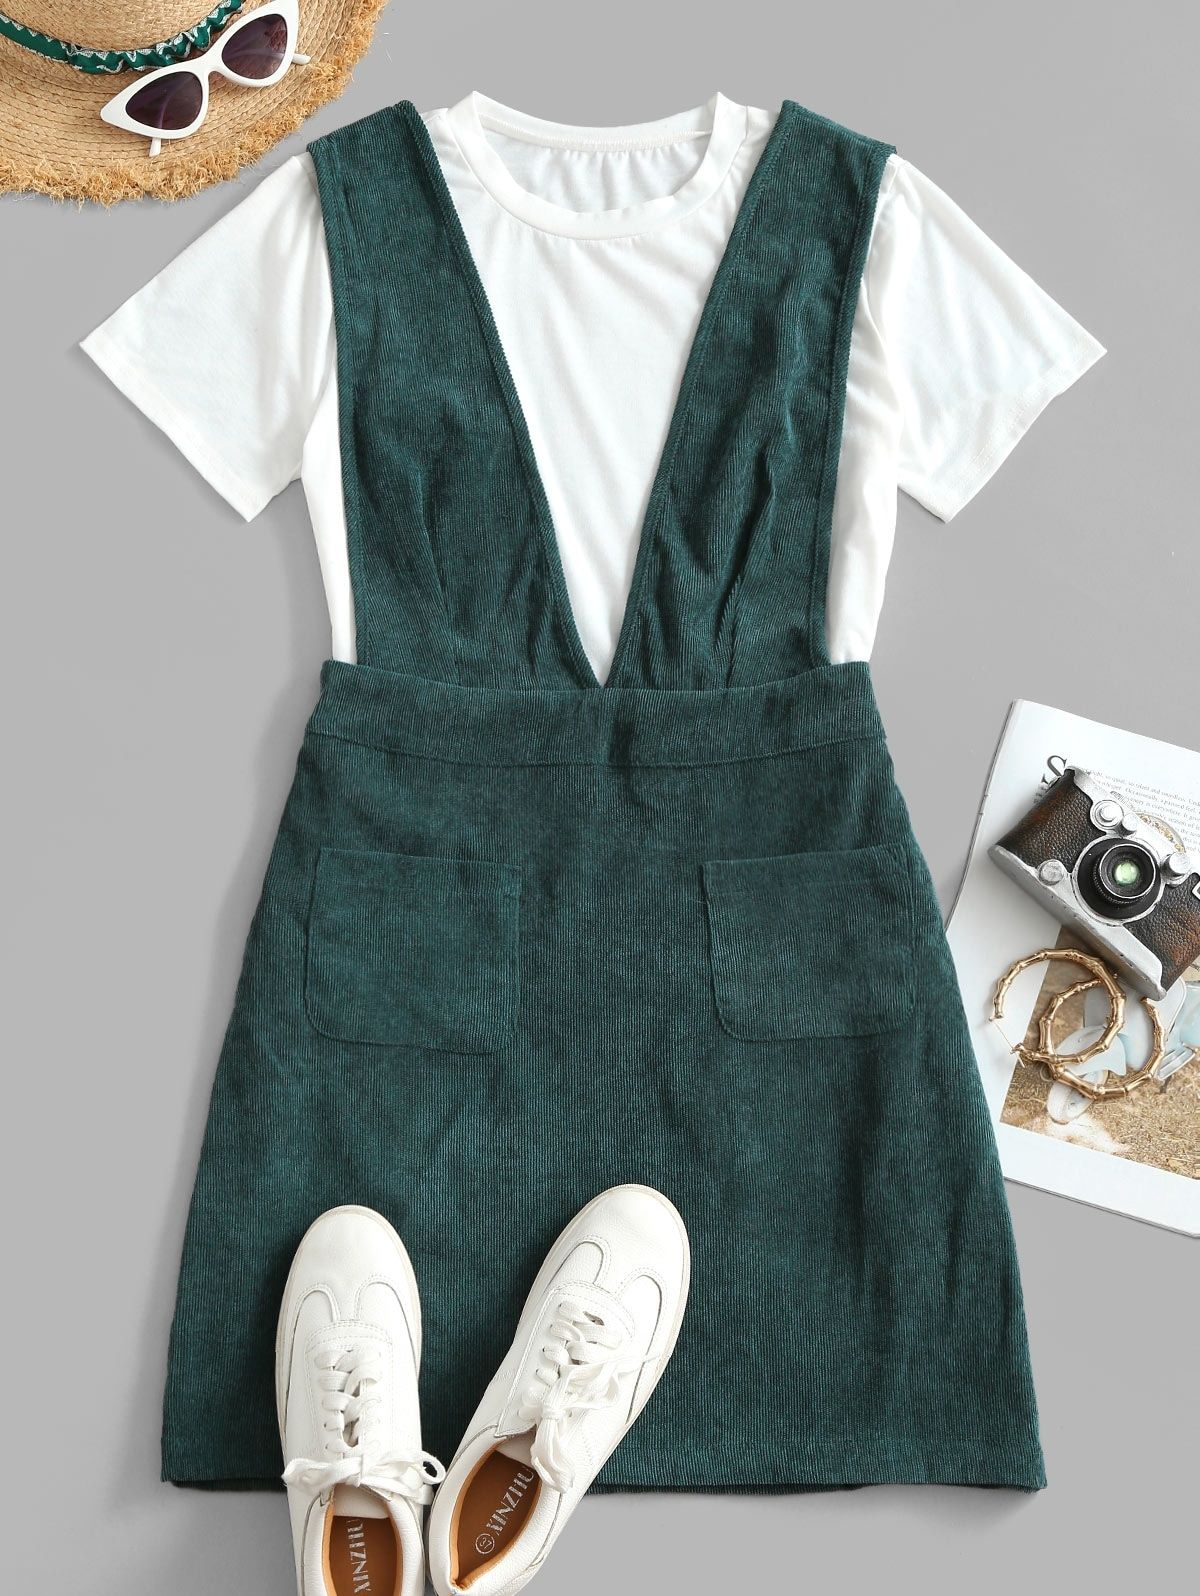 Pin By Victoria Fisher On Fashion 2020 Corduroy Overall Dress Overall Dress Overalls Fashion [ 1596 x 1200 Pixel ]